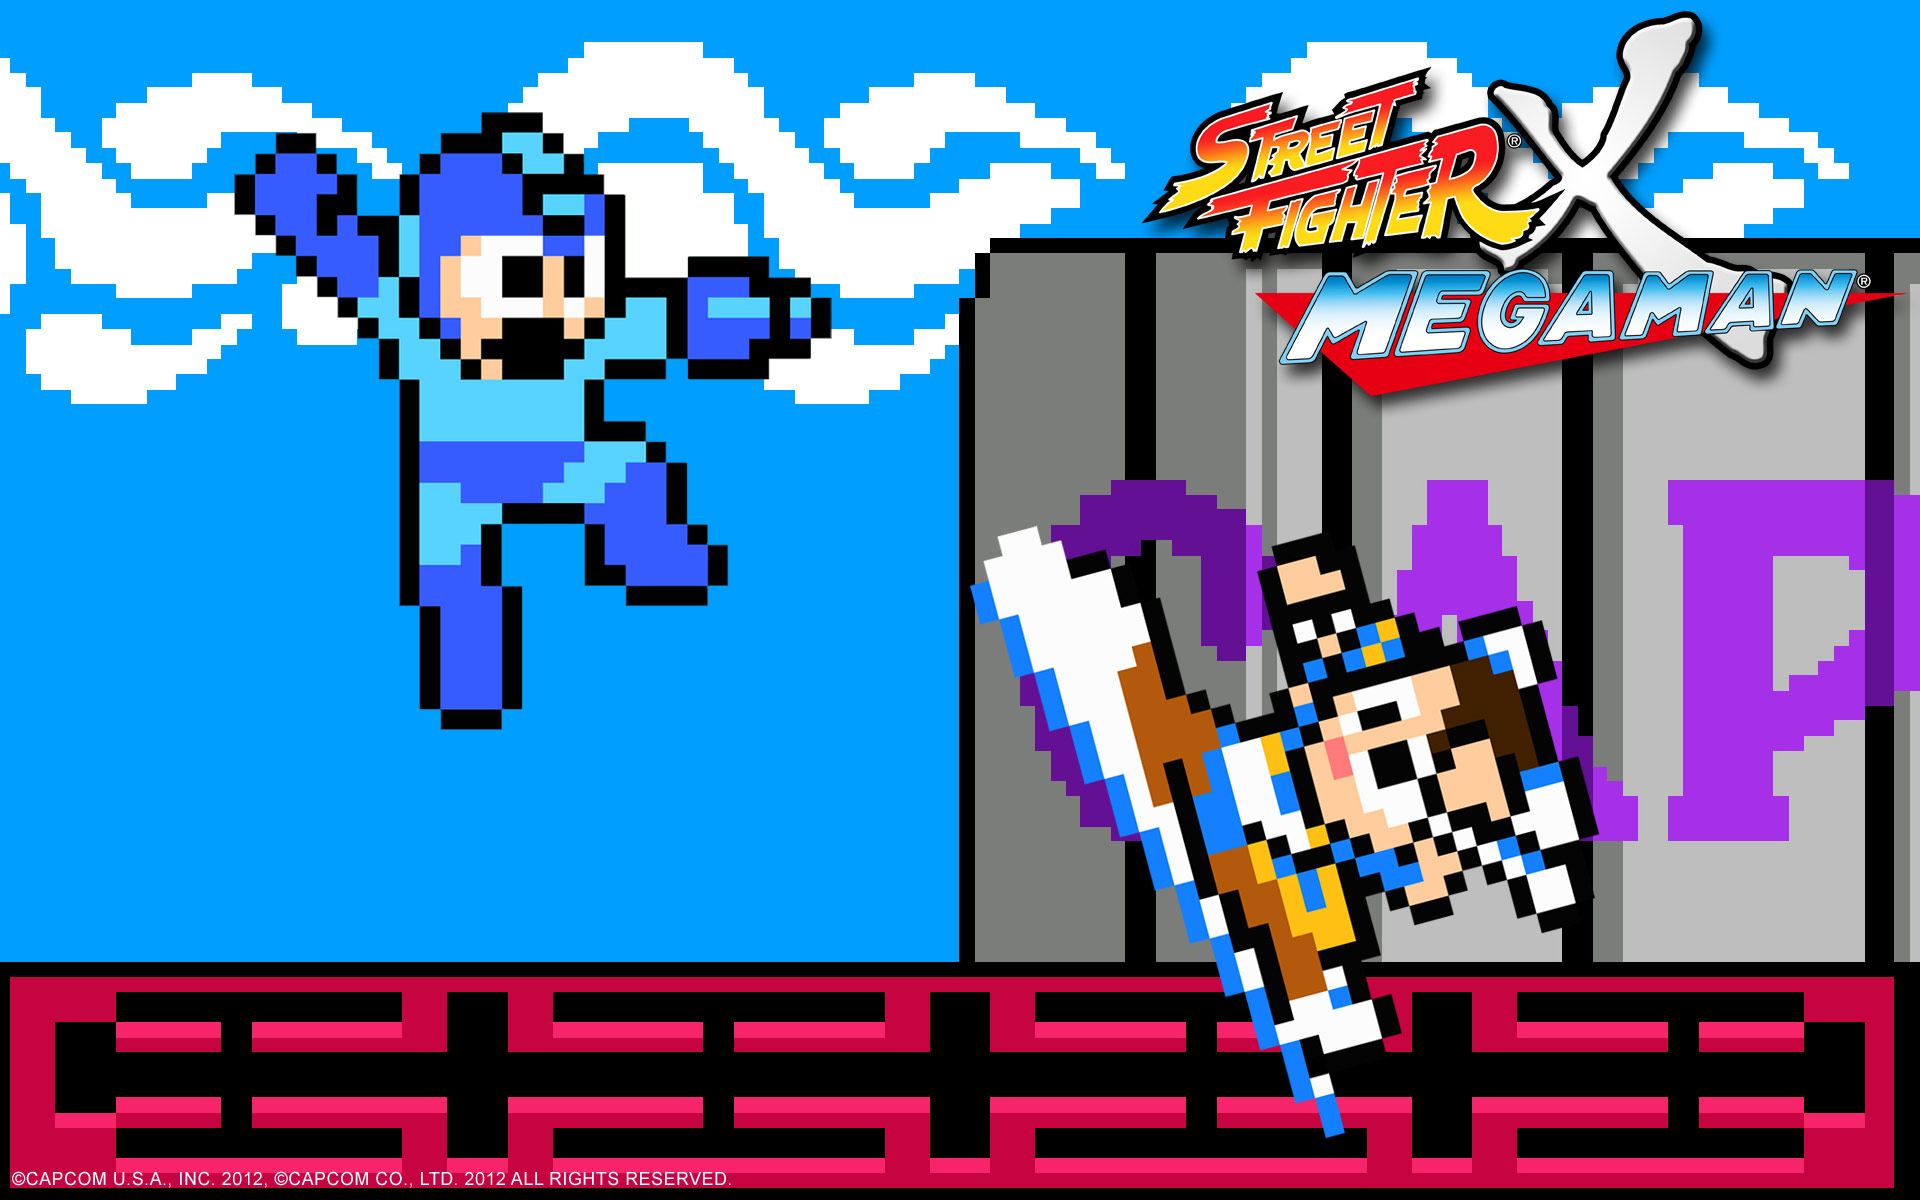 Street Fighter X Mega Man wallpaper #2